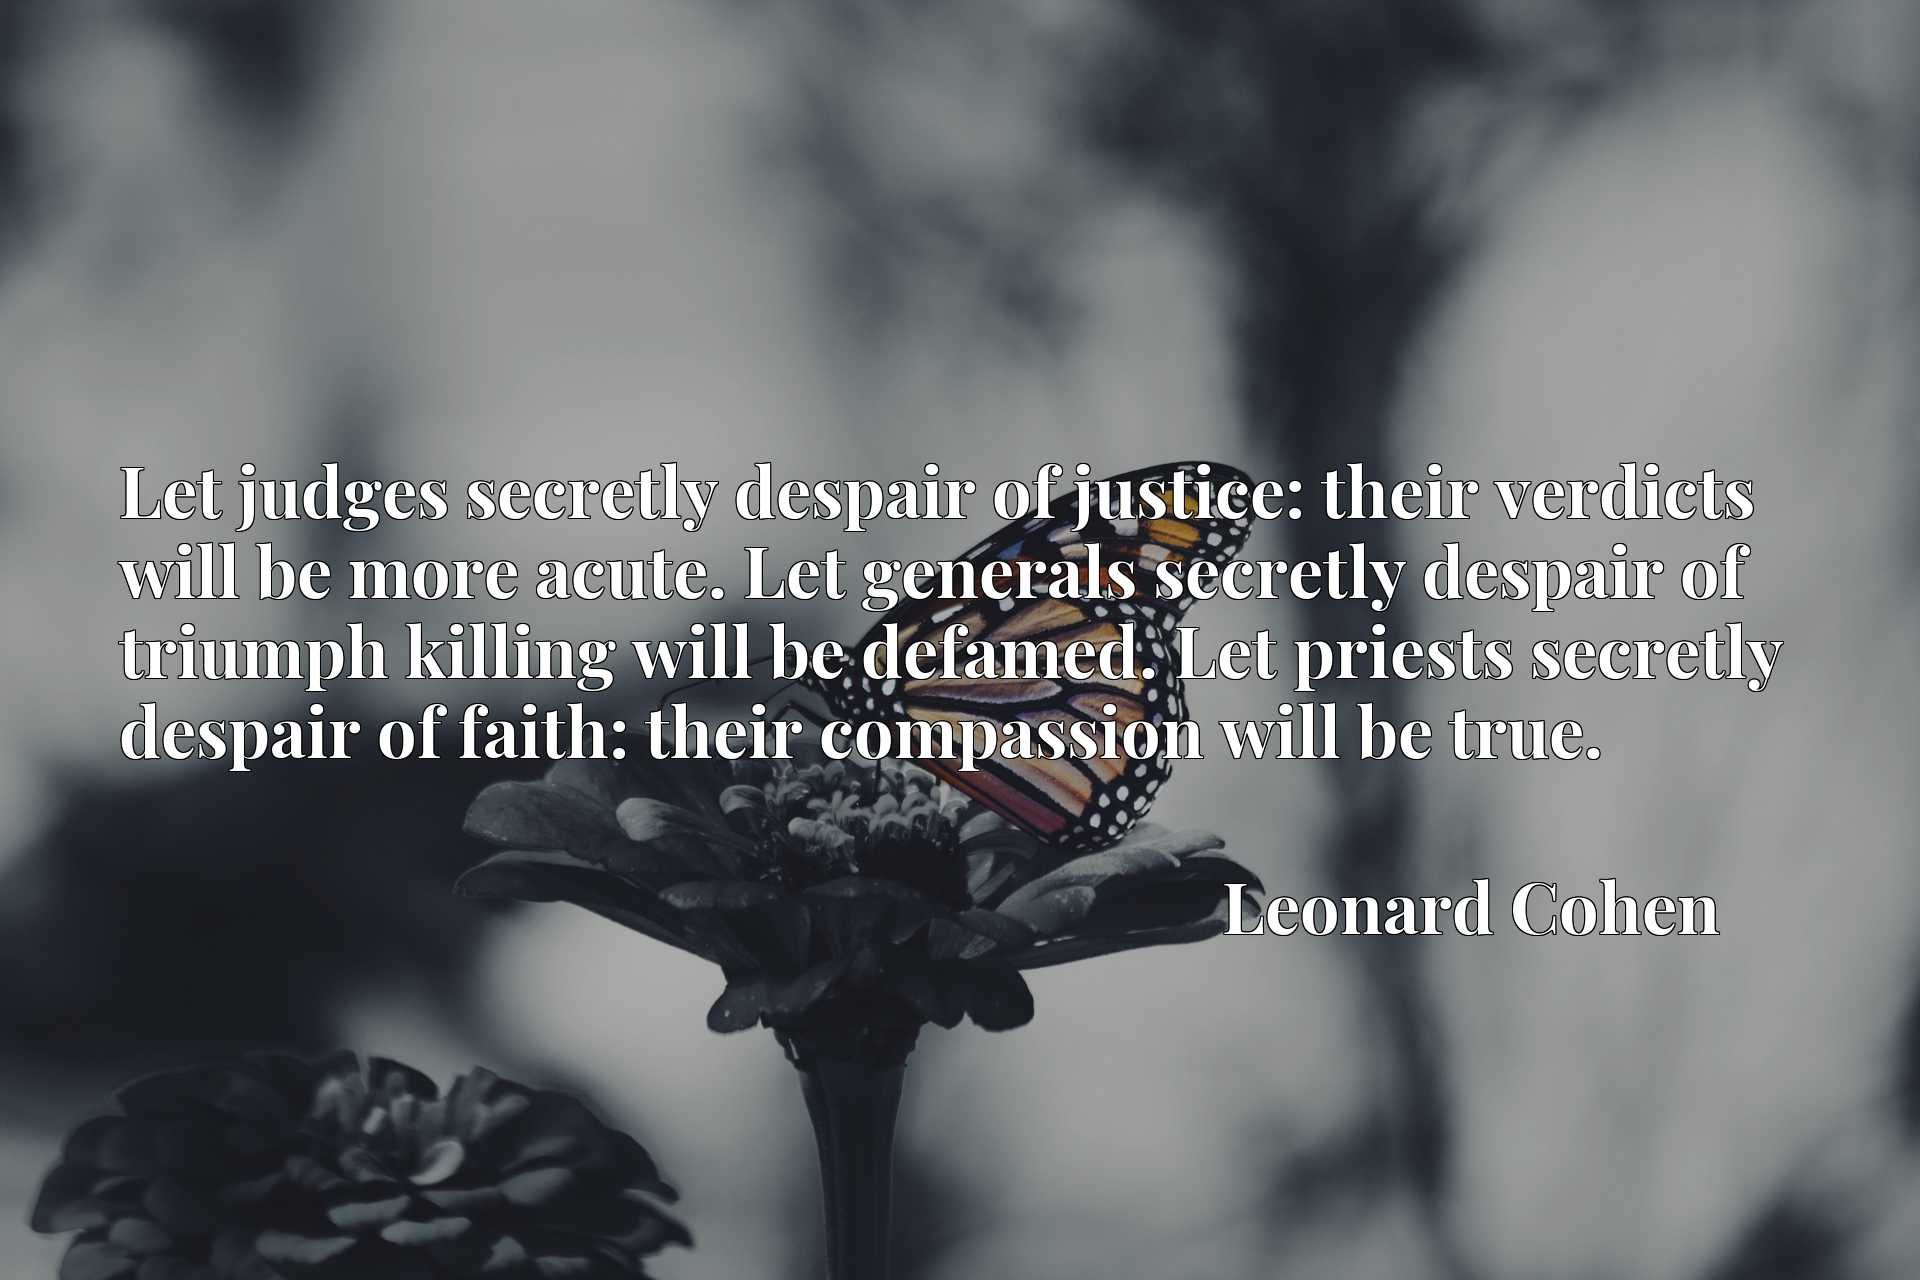 Let judges secretly despair of justice: their verdicts will be more acute. Let generals secretly despair of triumph killing will be defamed. Let priests secretly despair of faith: their compassion will be true.